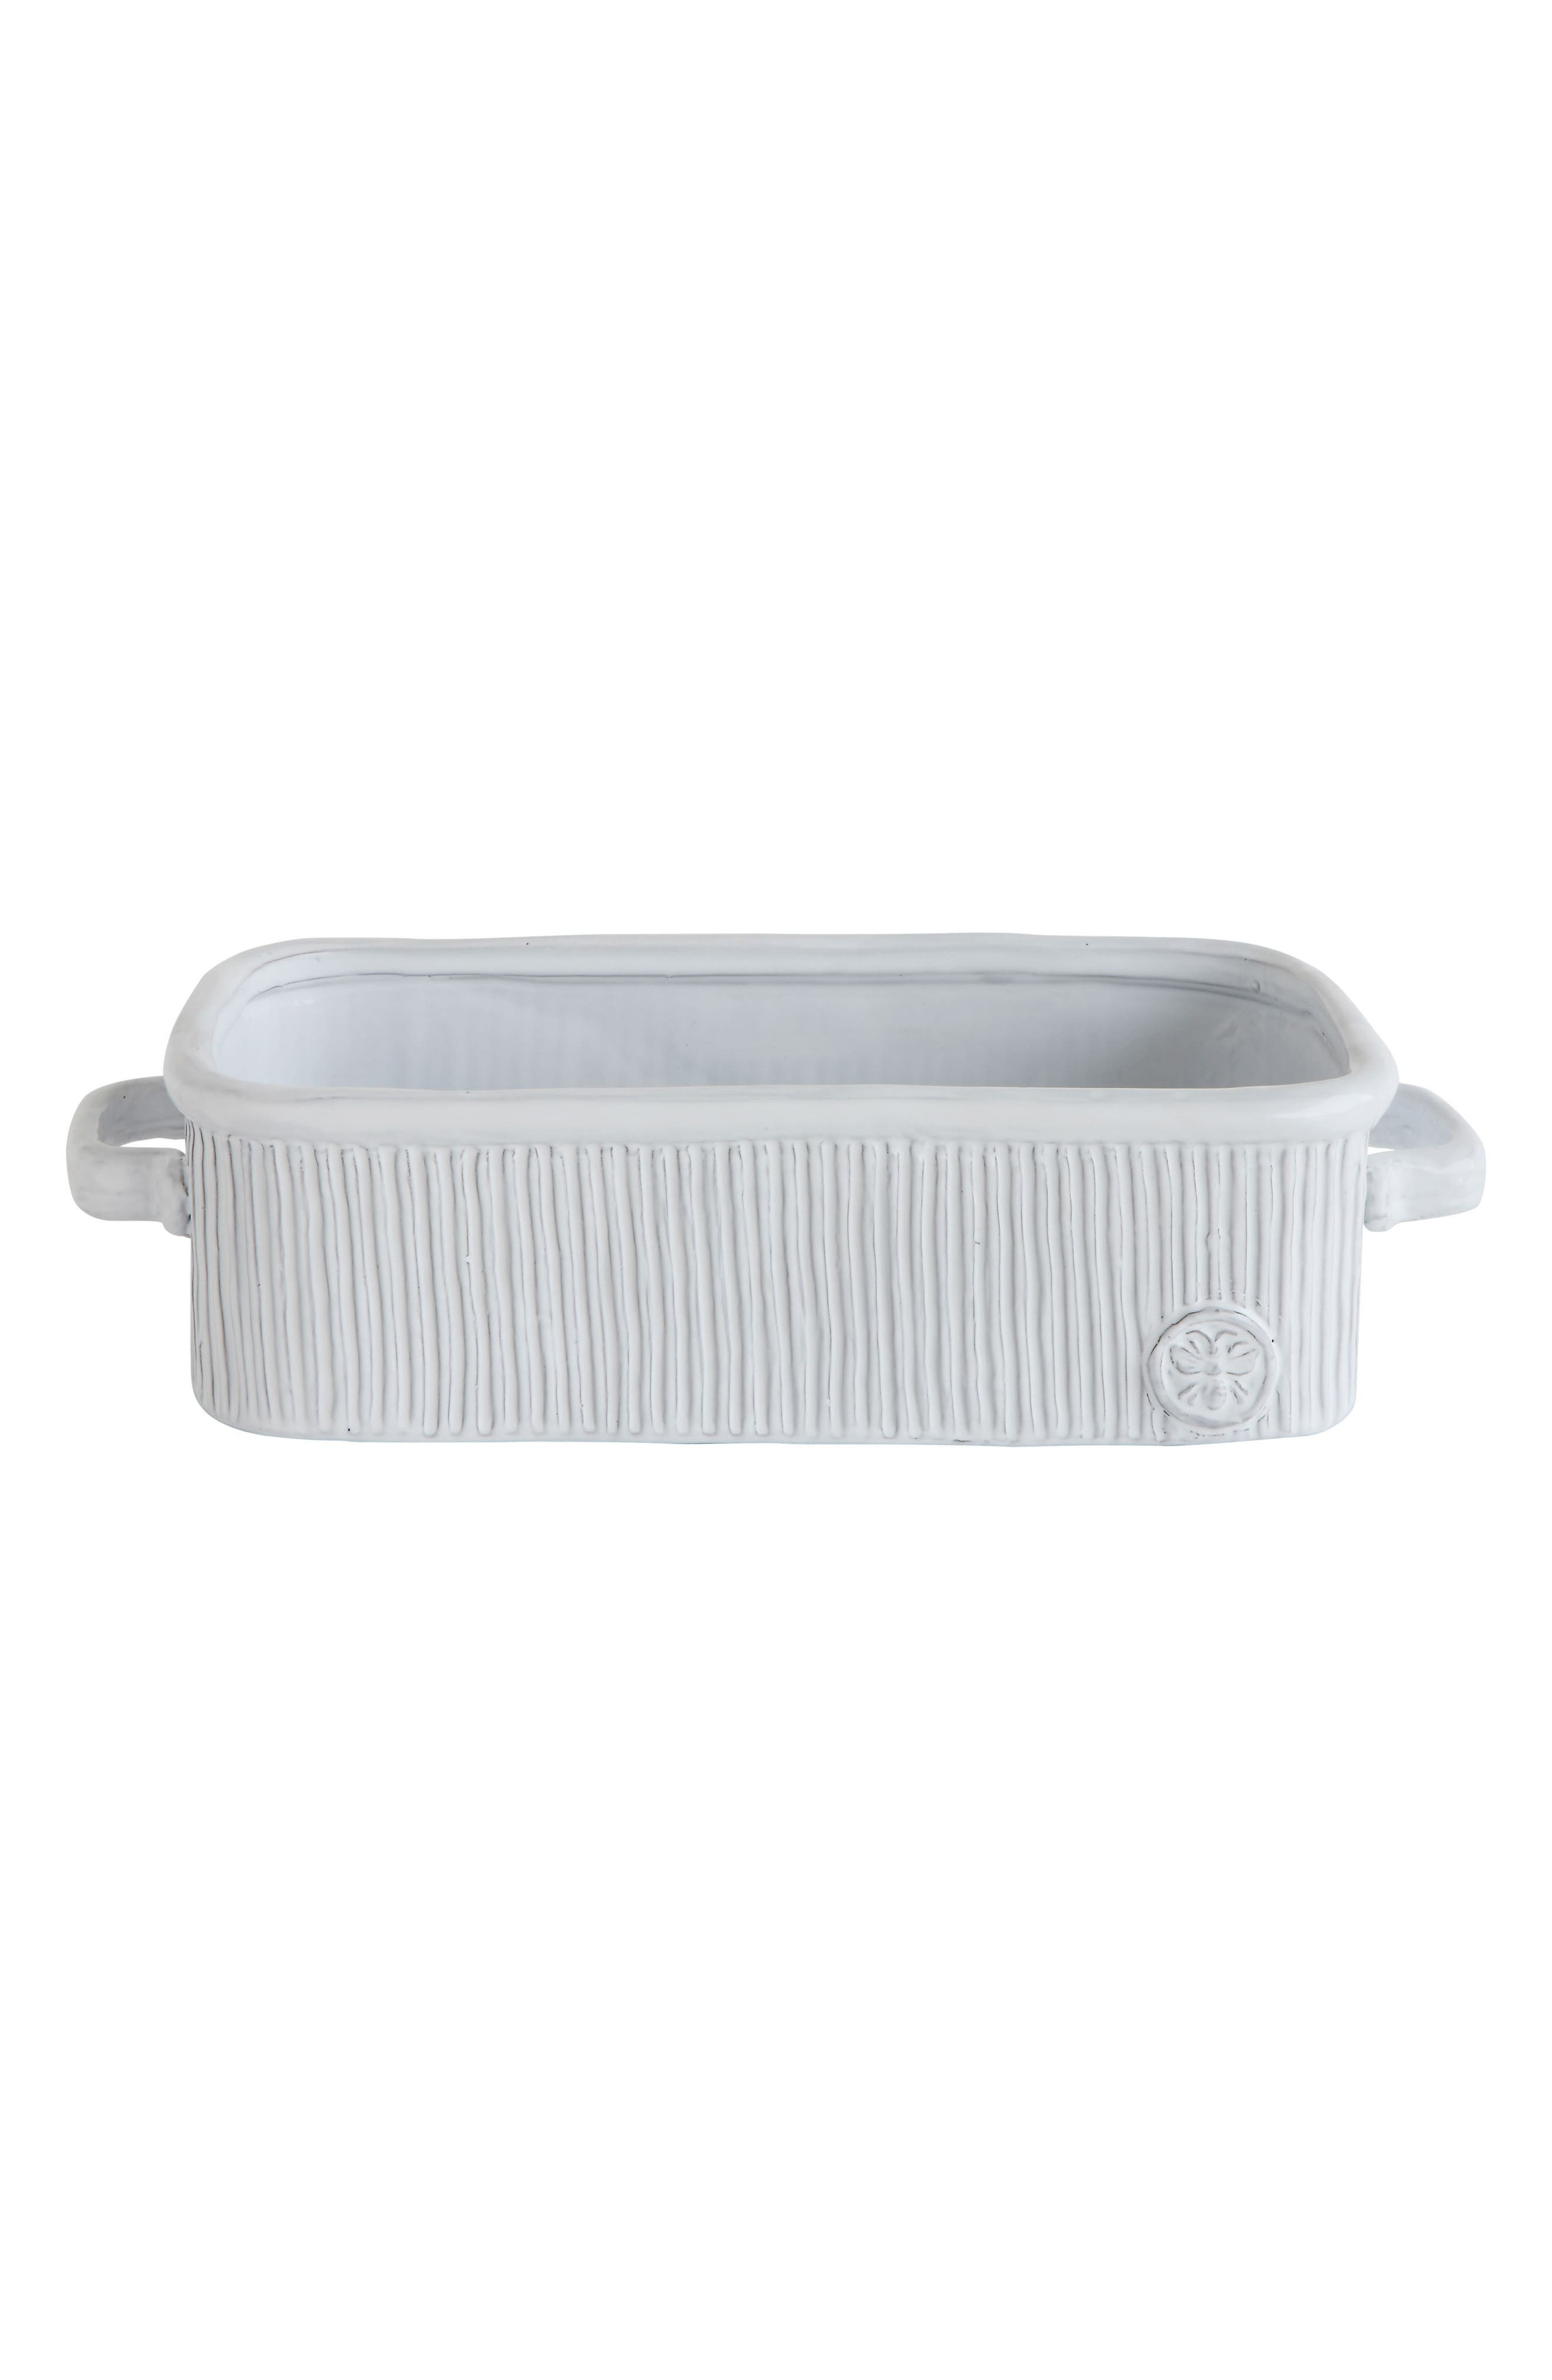 Ceramic Loaf Pan,                         Main,                         color, White